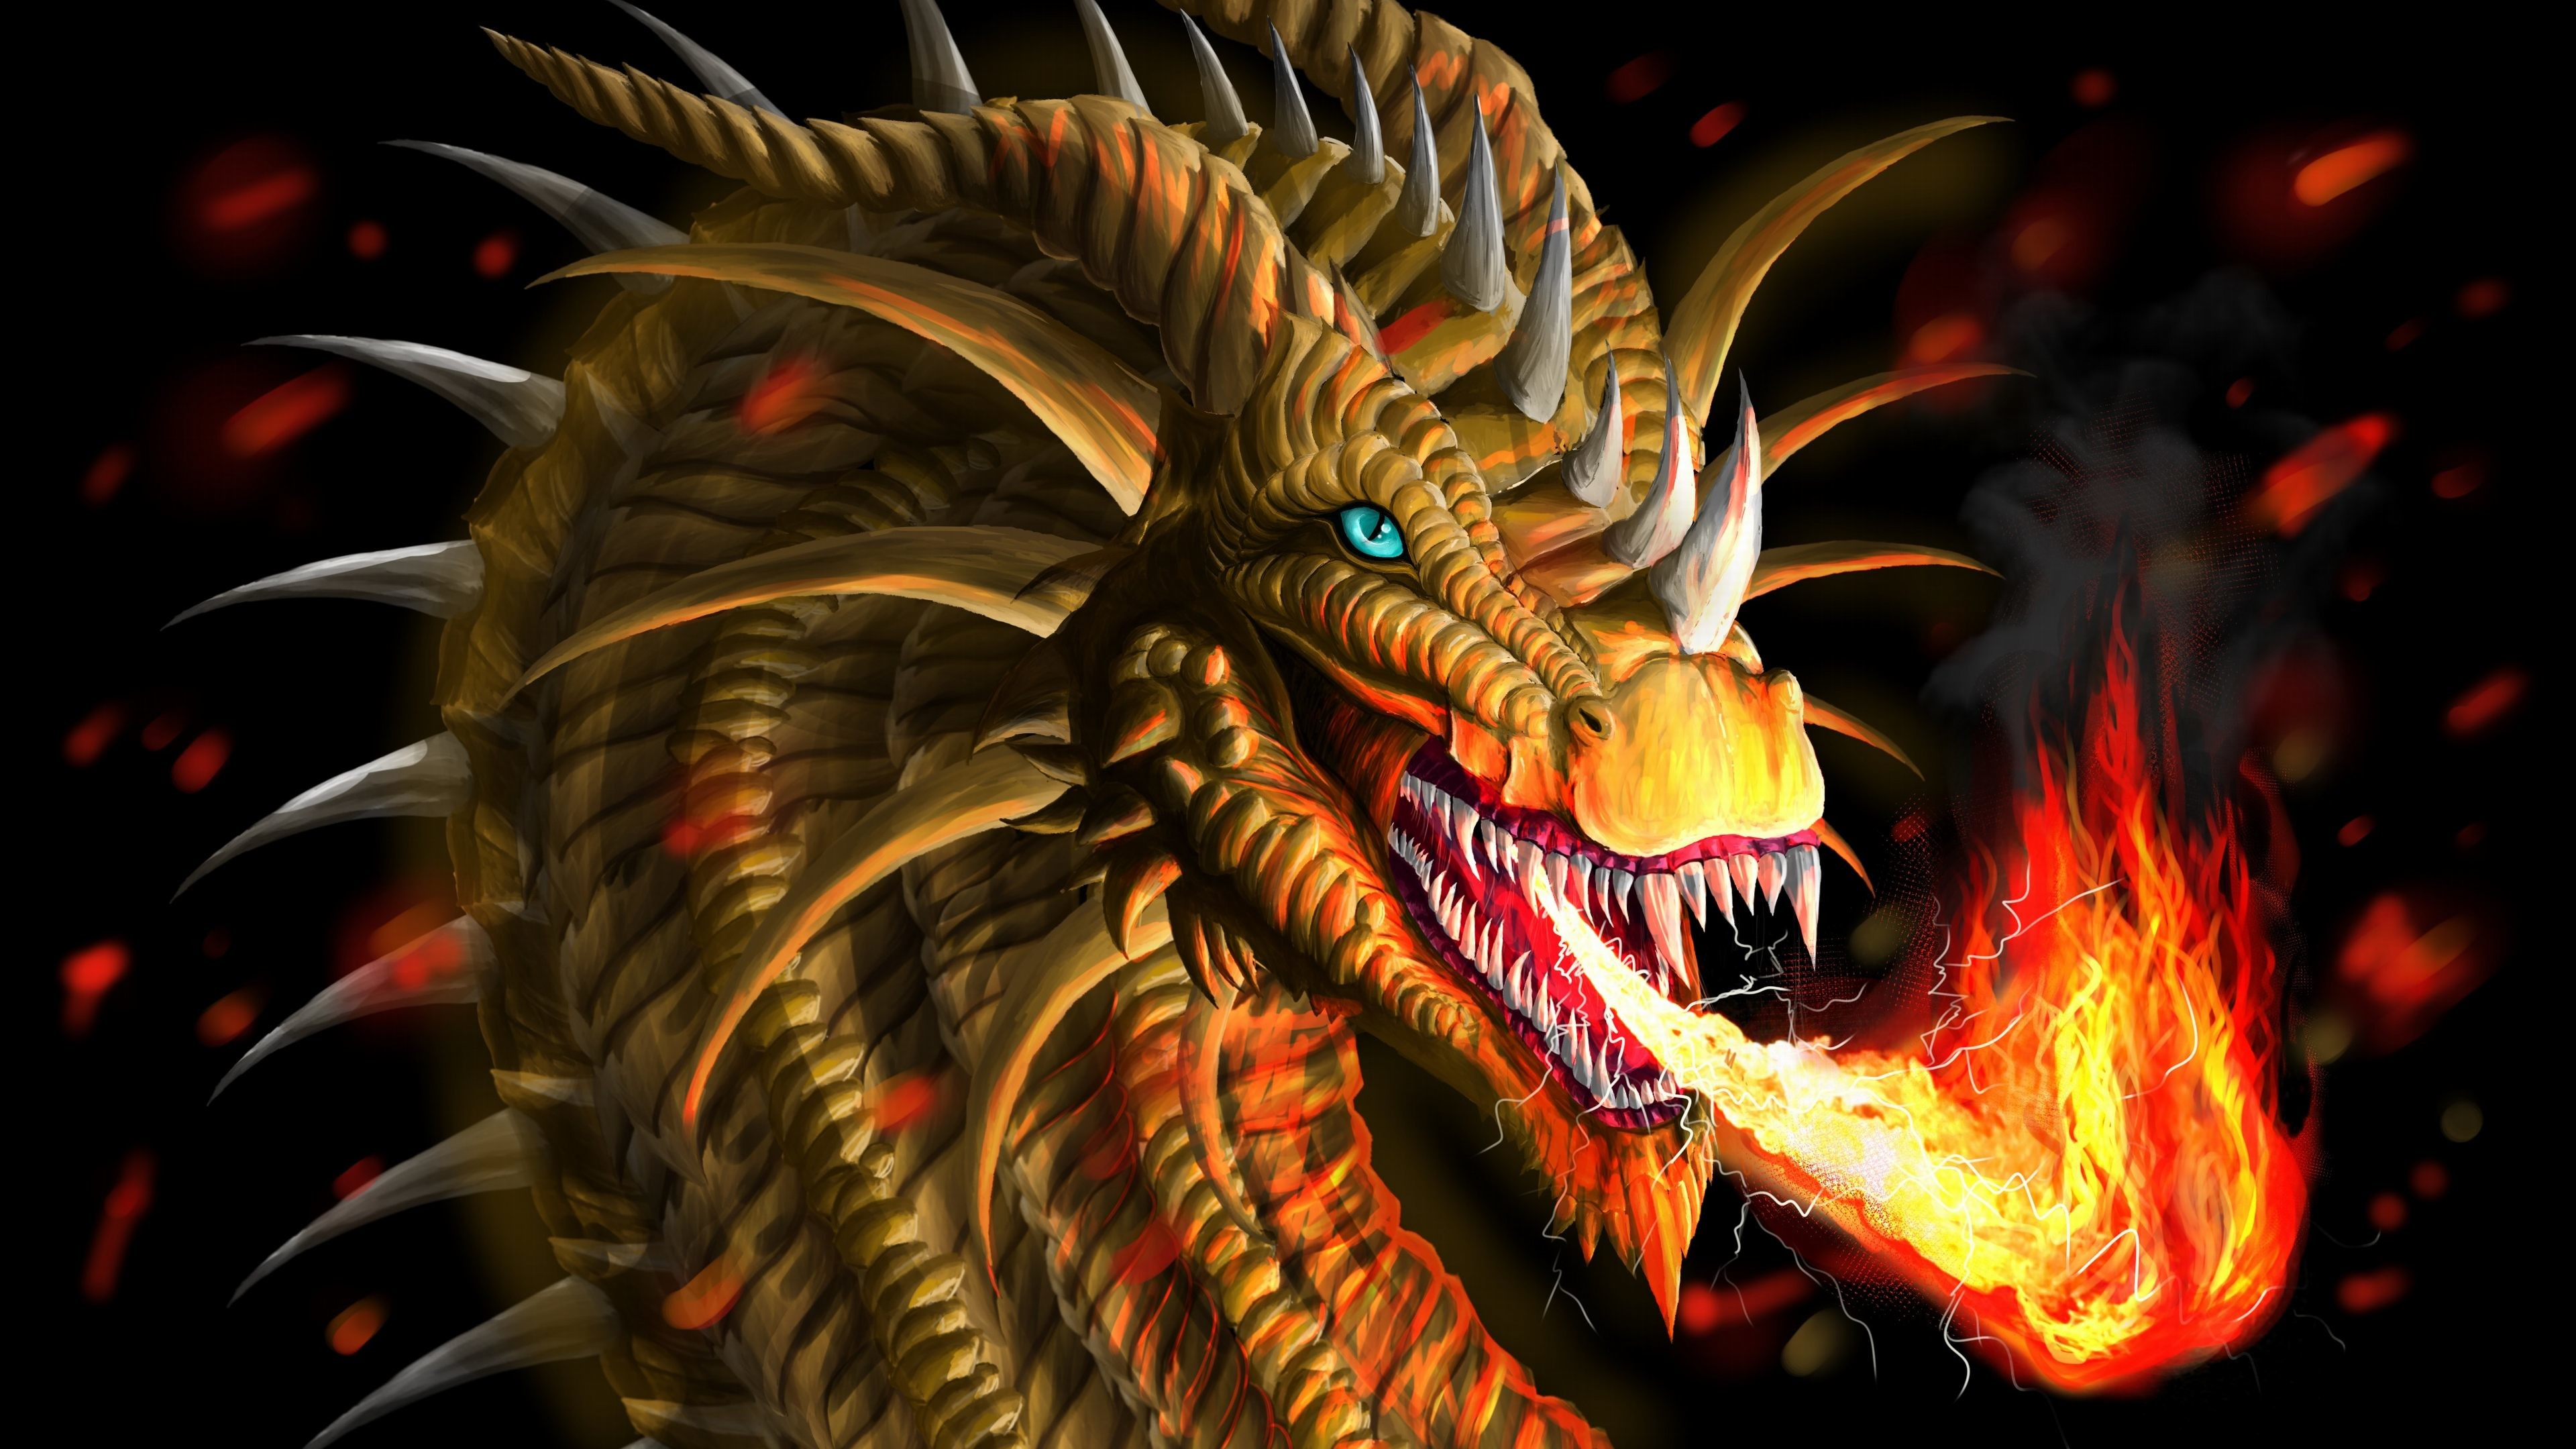 Dragon wallpaper hd 75 images 1920x1200 kerem beyit dragons 626121 widescreen desktop mobile iphone android hd wallpaper and desktop voltagebd Gallery